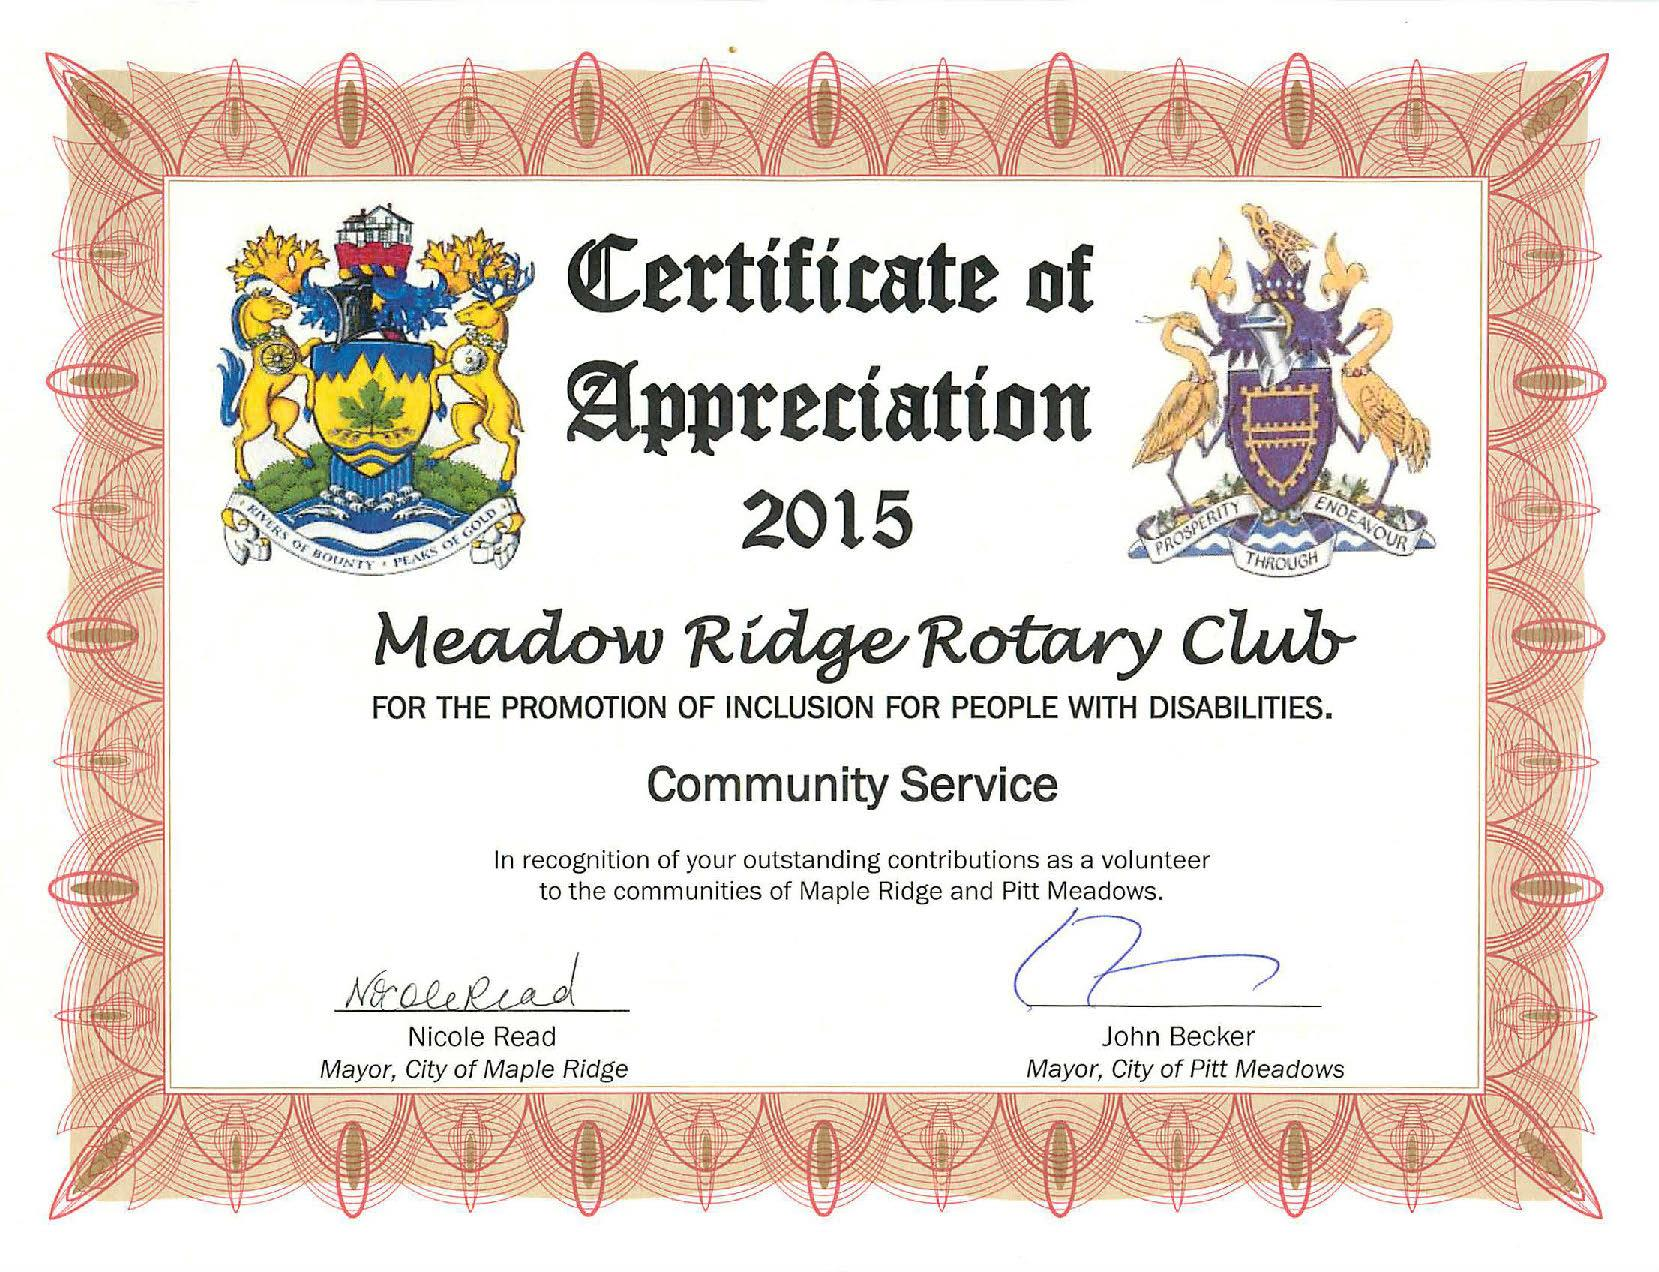 rotary certificate of appreciation template - home page rotary club of meadow ridge